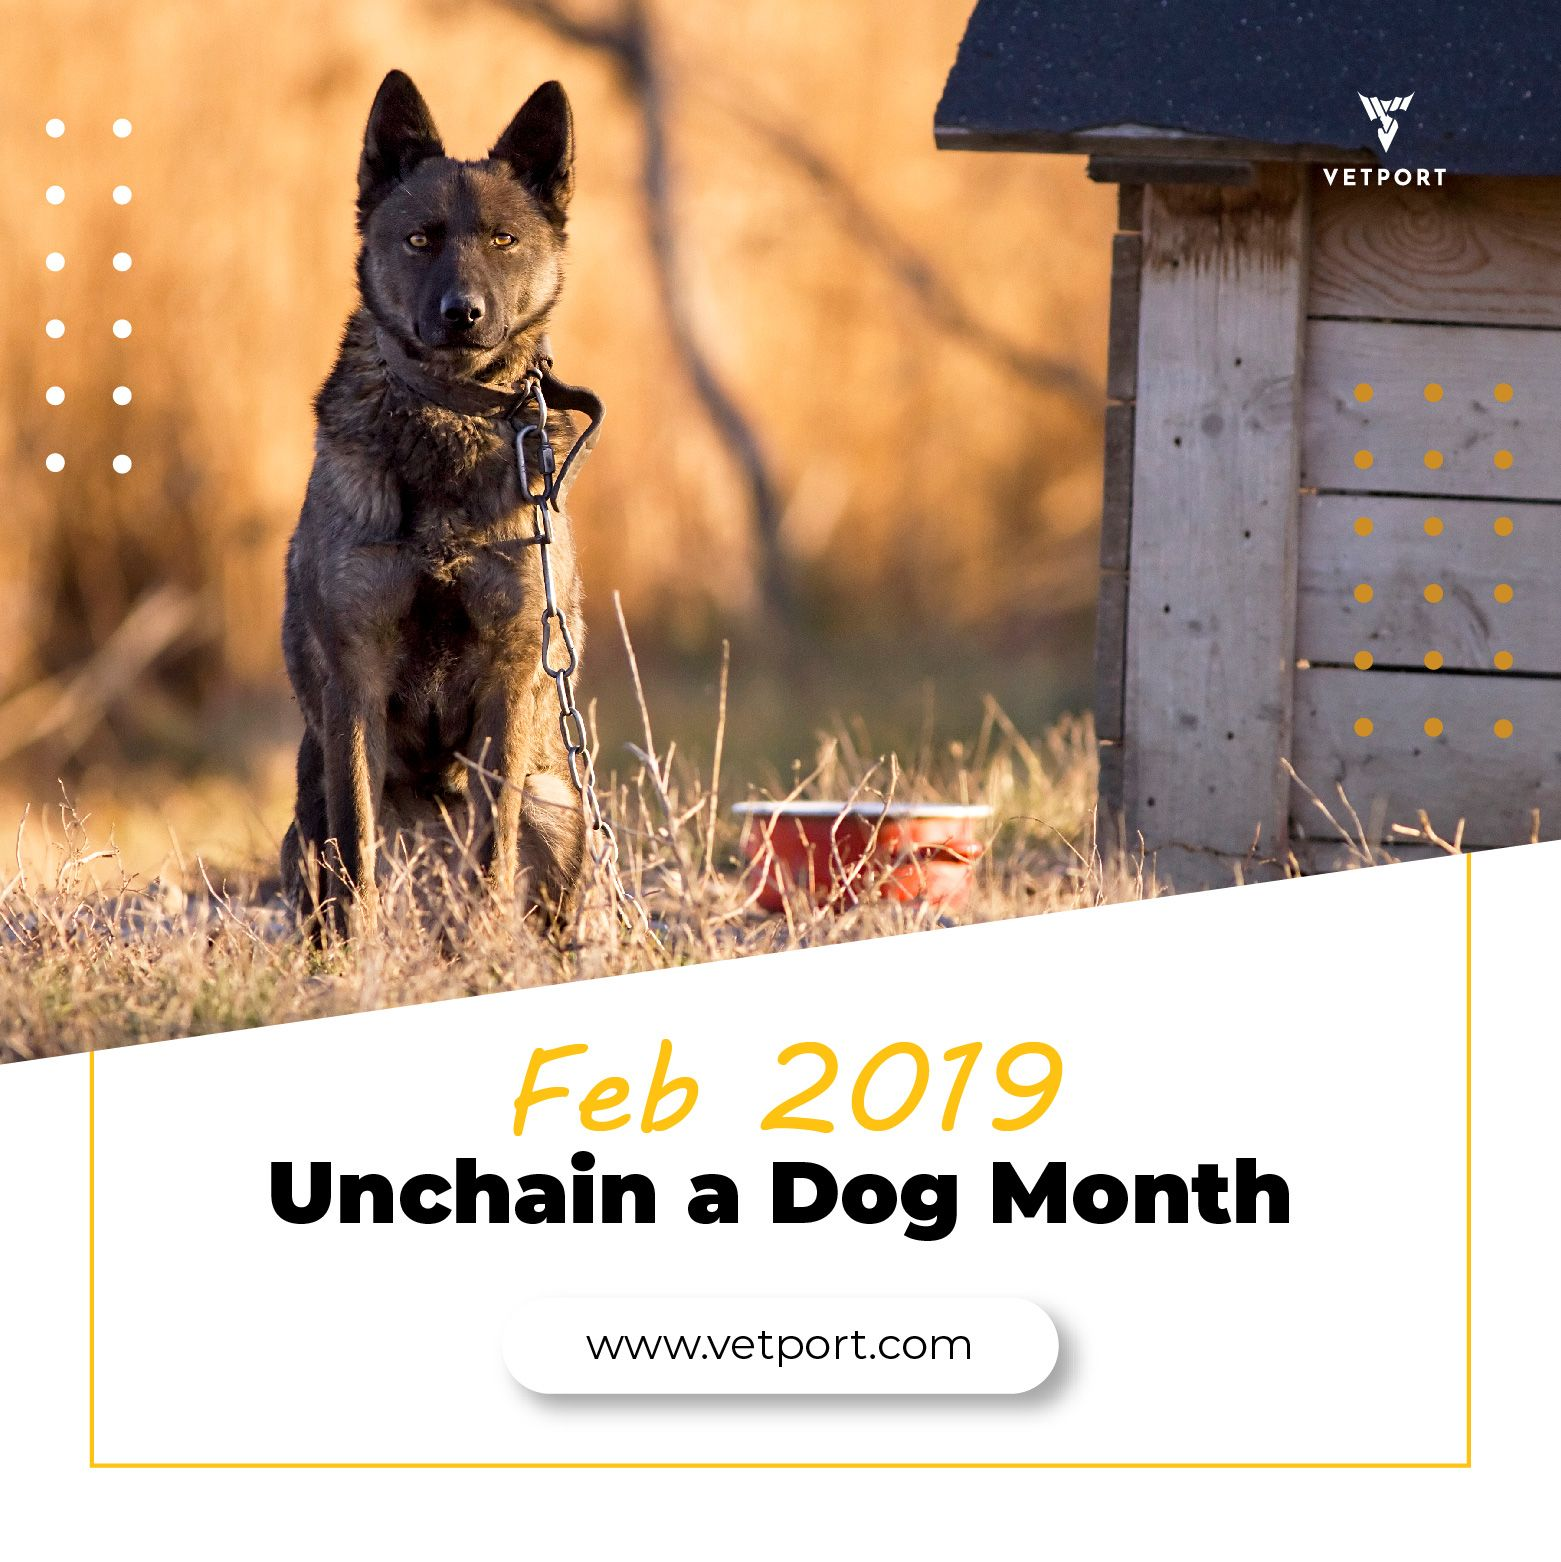 Unchain a Dog Month February 2019 TuesdayMotivation